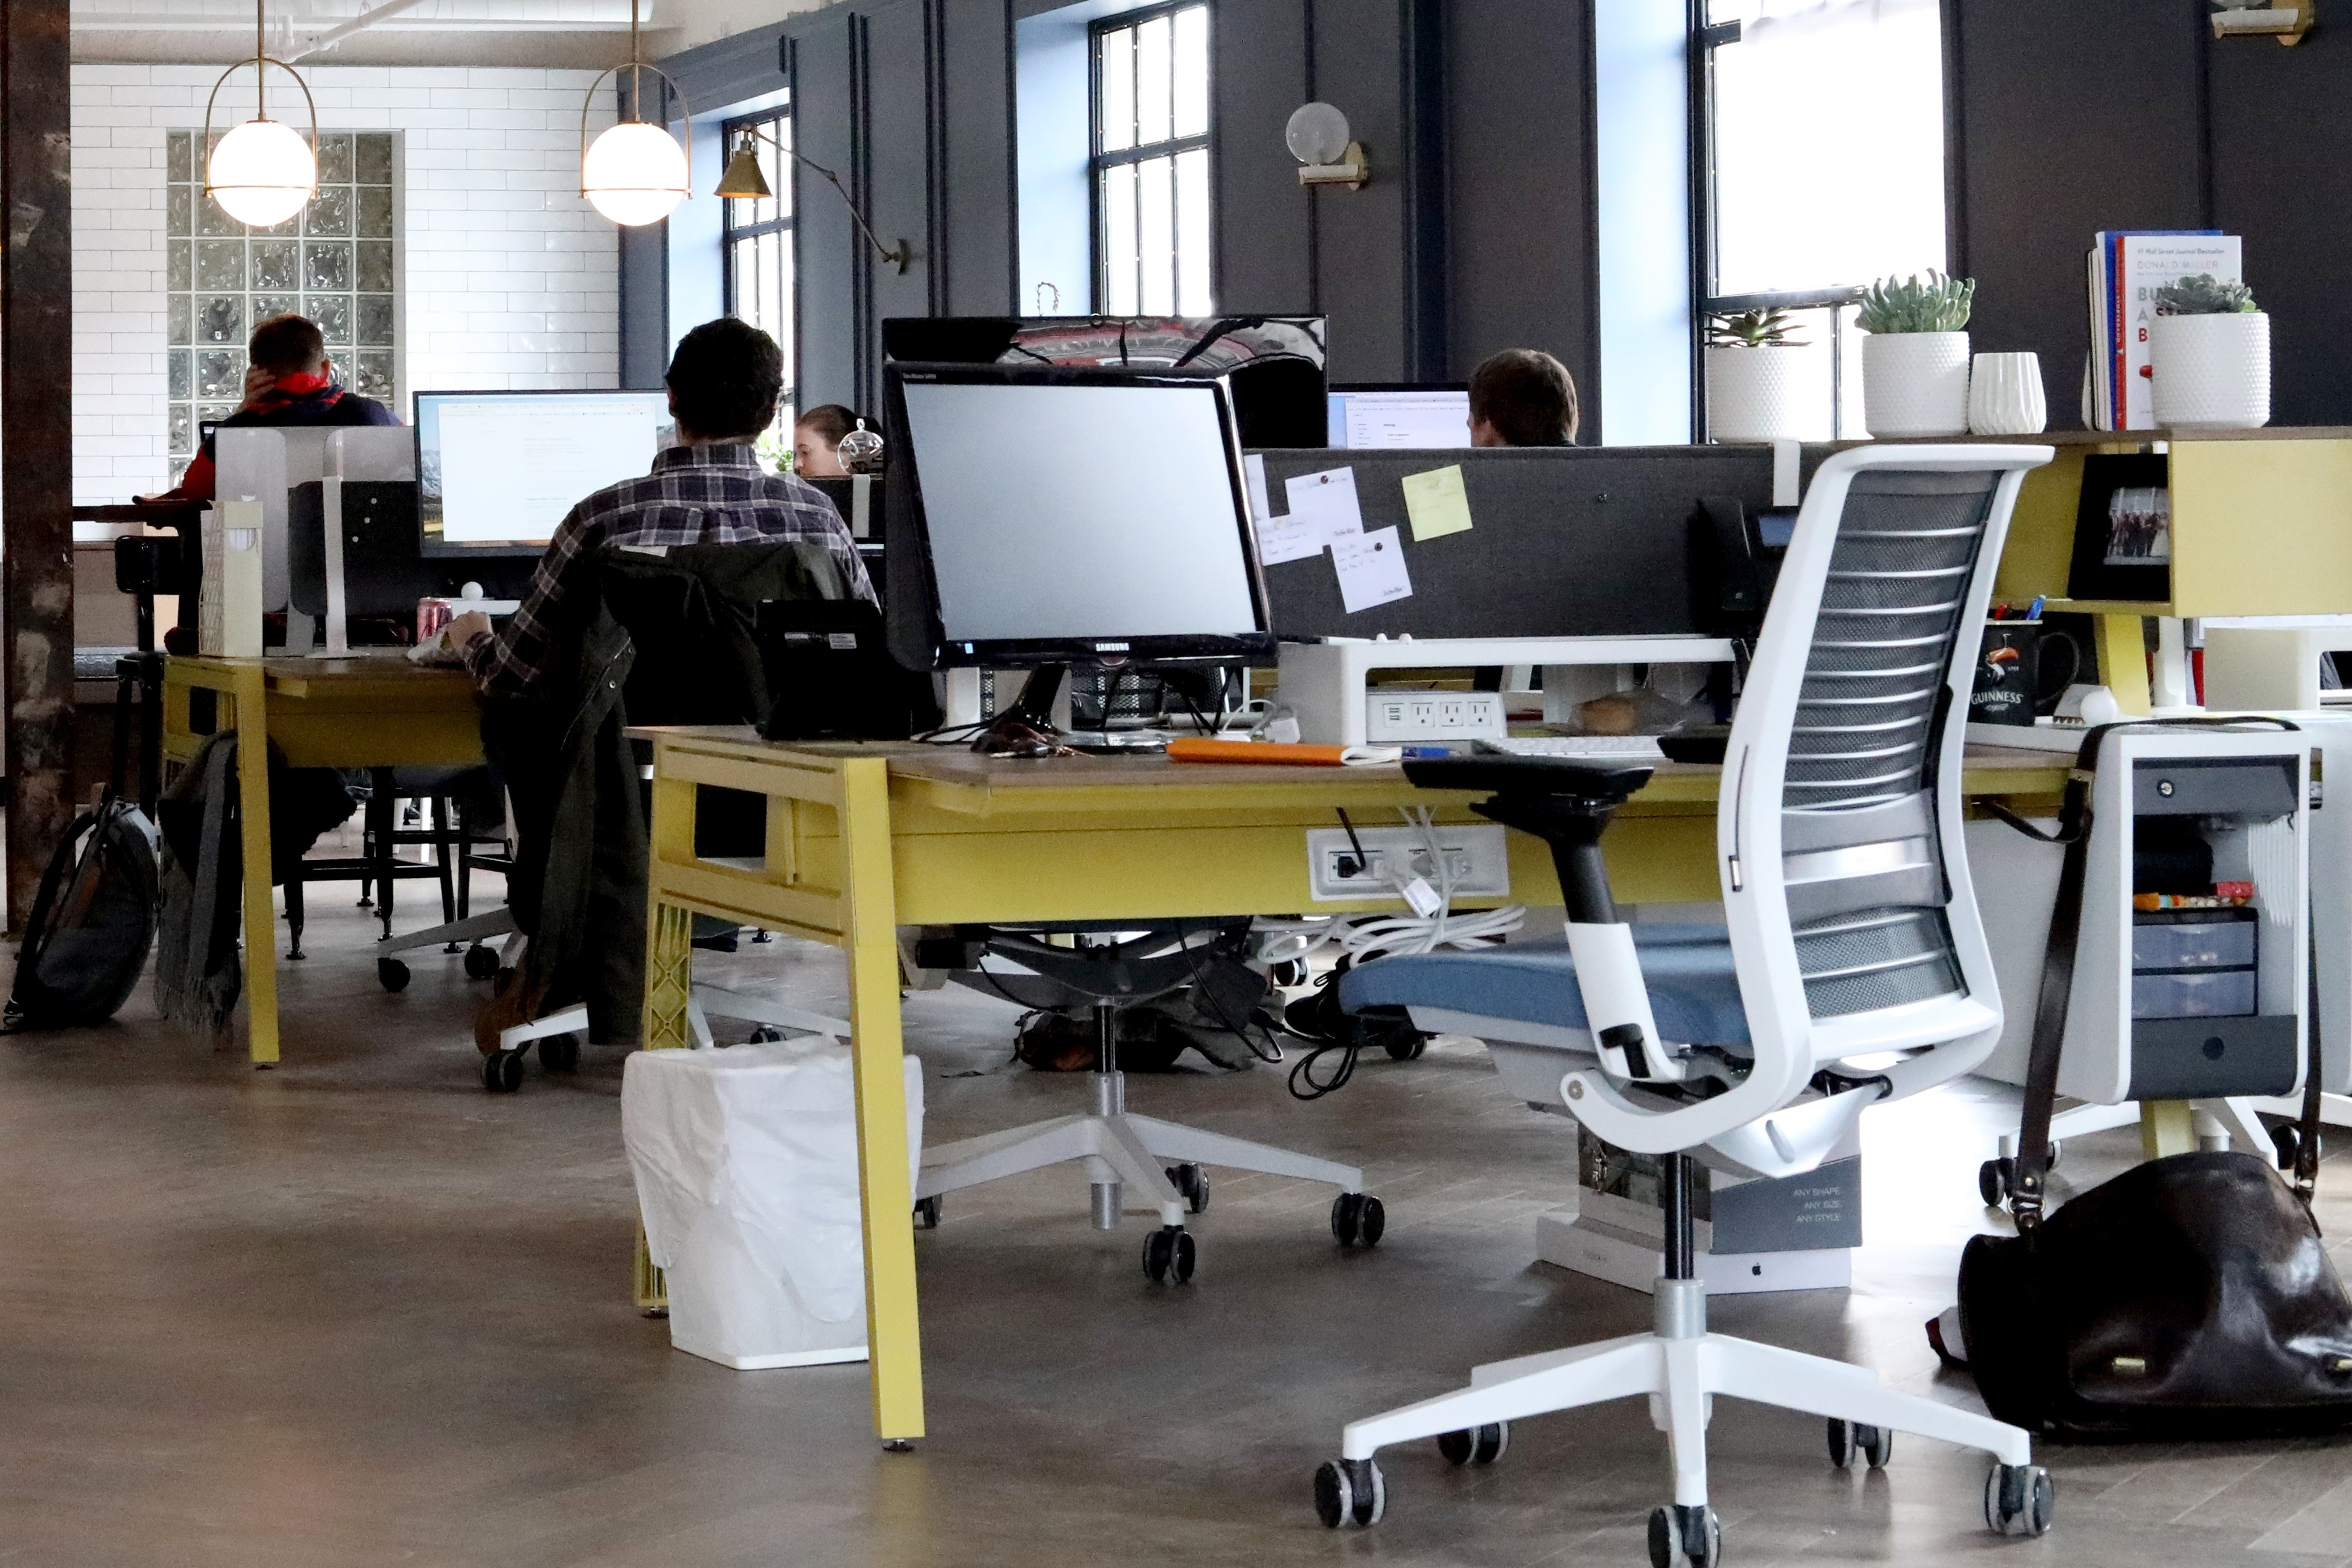 Modern office space with computers and yellow desks and rolling chairs